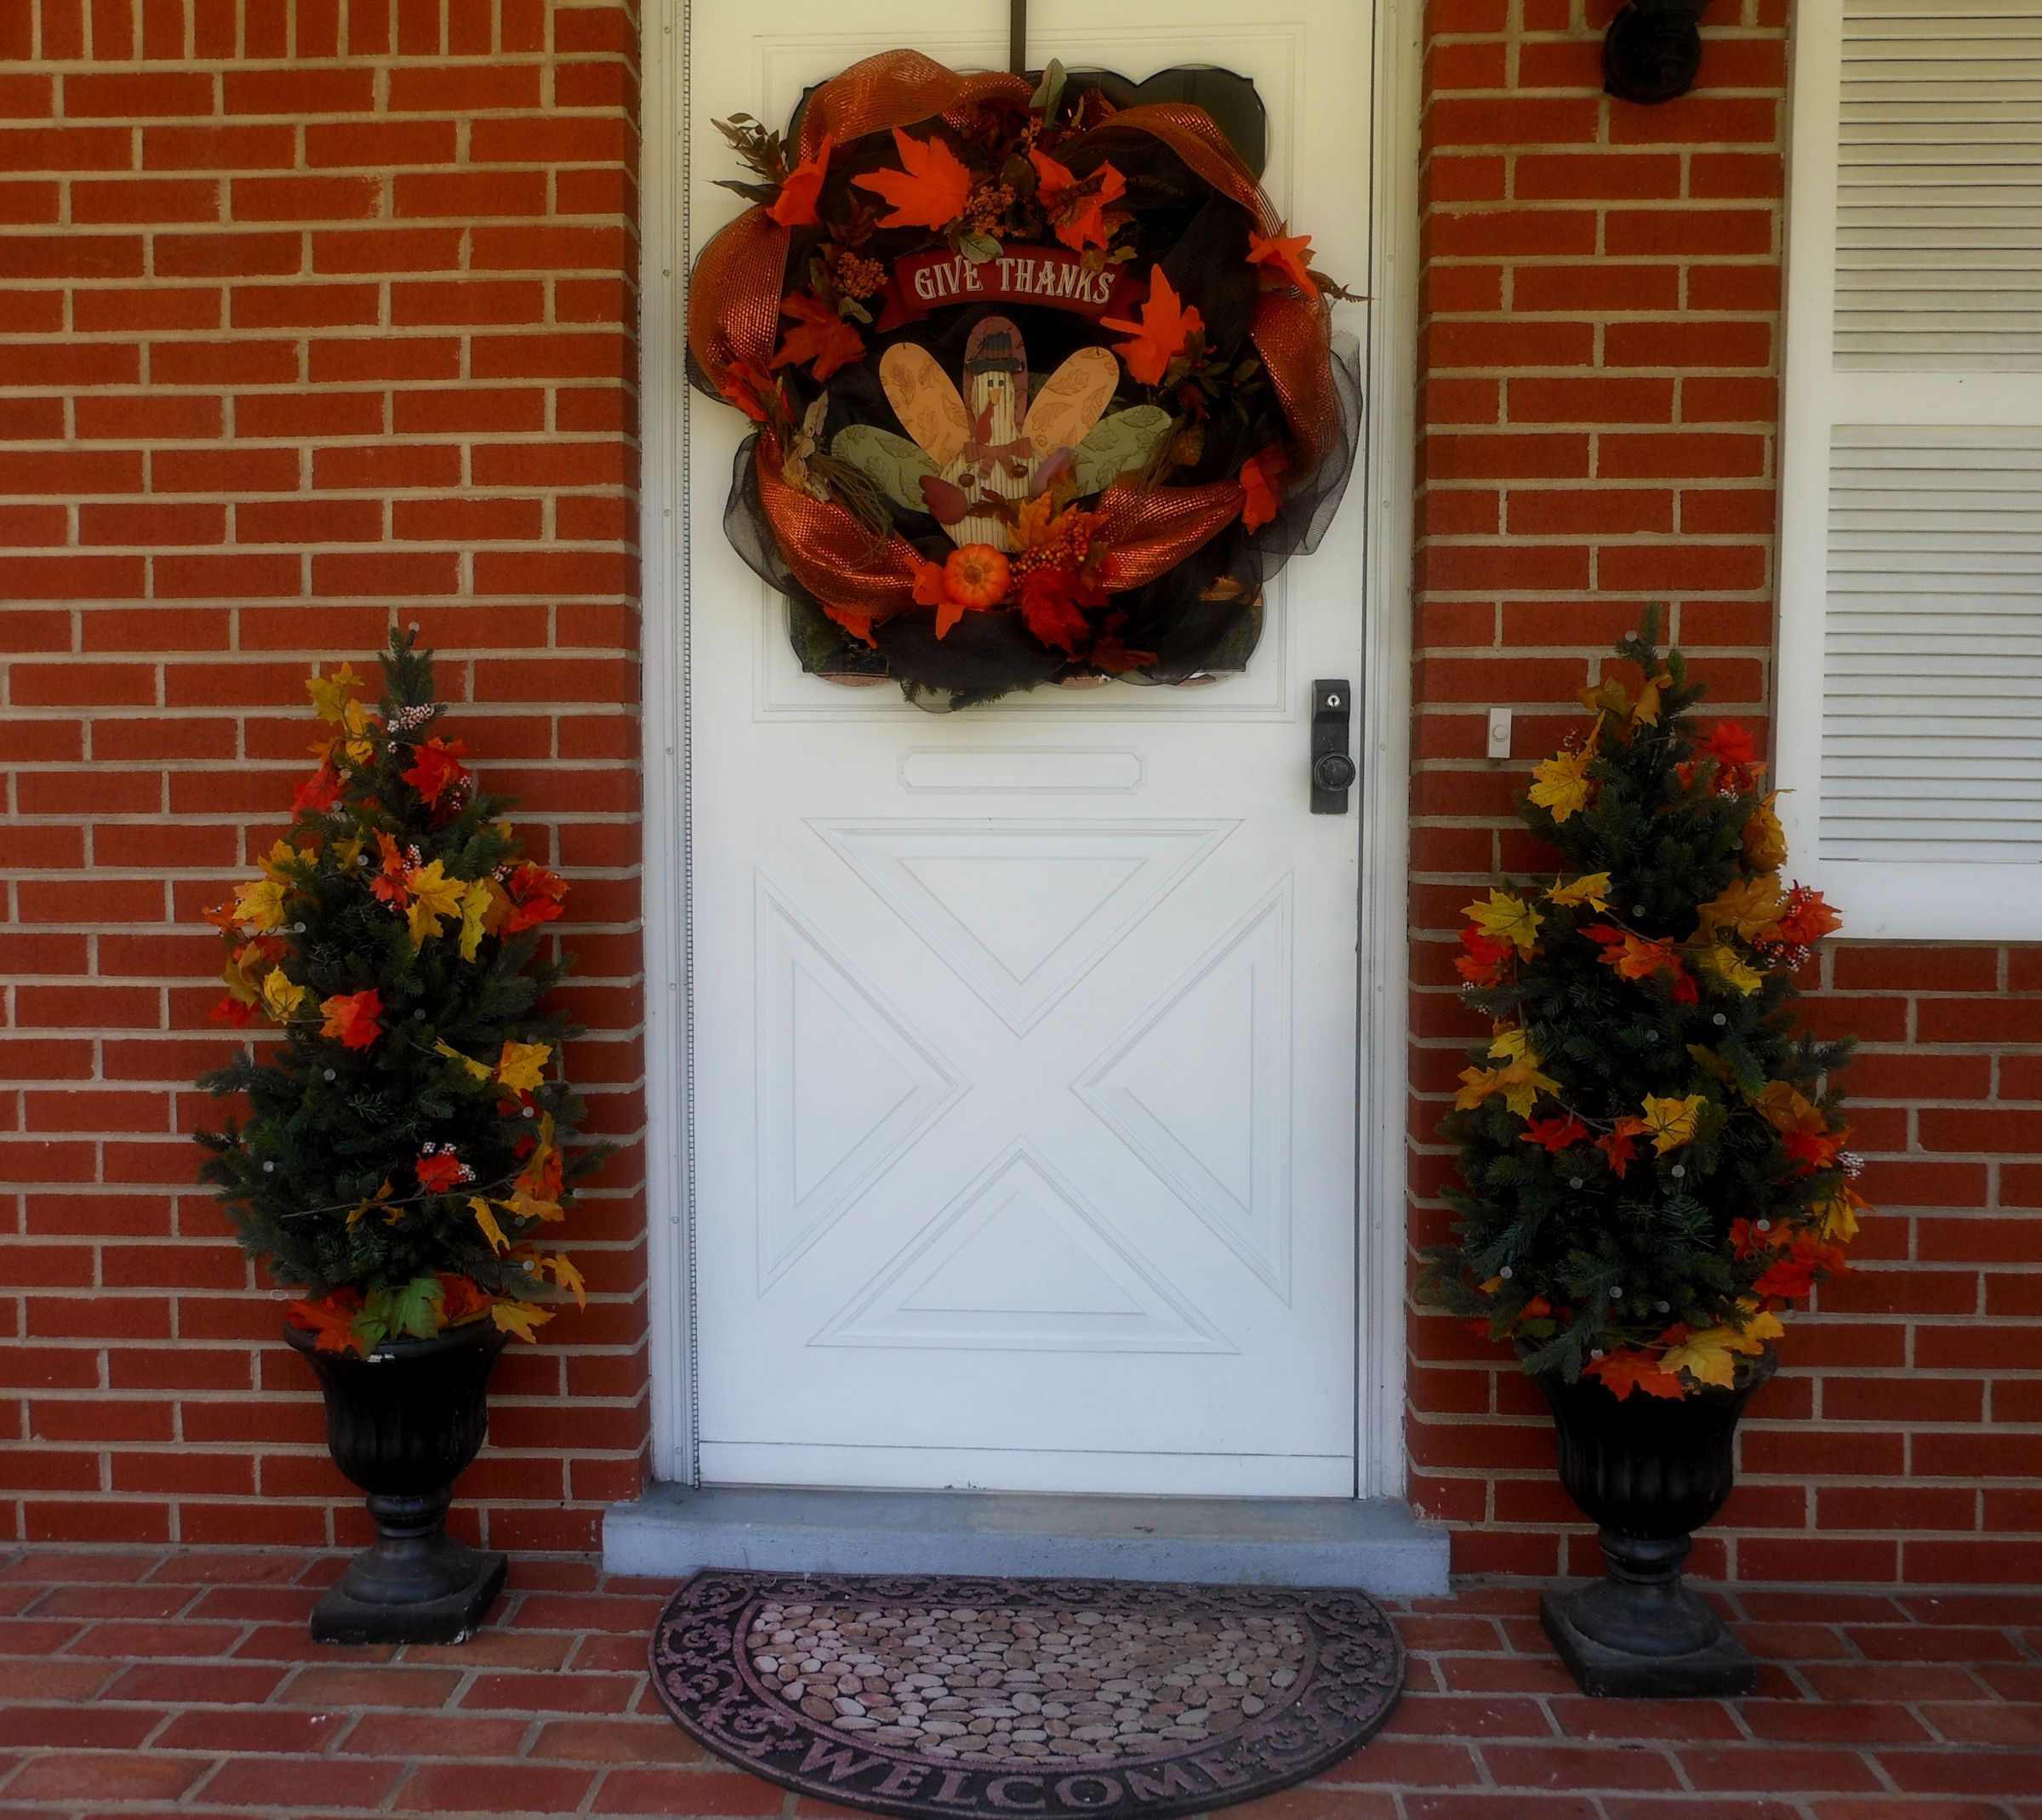 Bethlehem lights wreath battery operated - Front Door Decorated For Fall Autumn With Bethlehem Lights Wreath And Urn Trees That Are